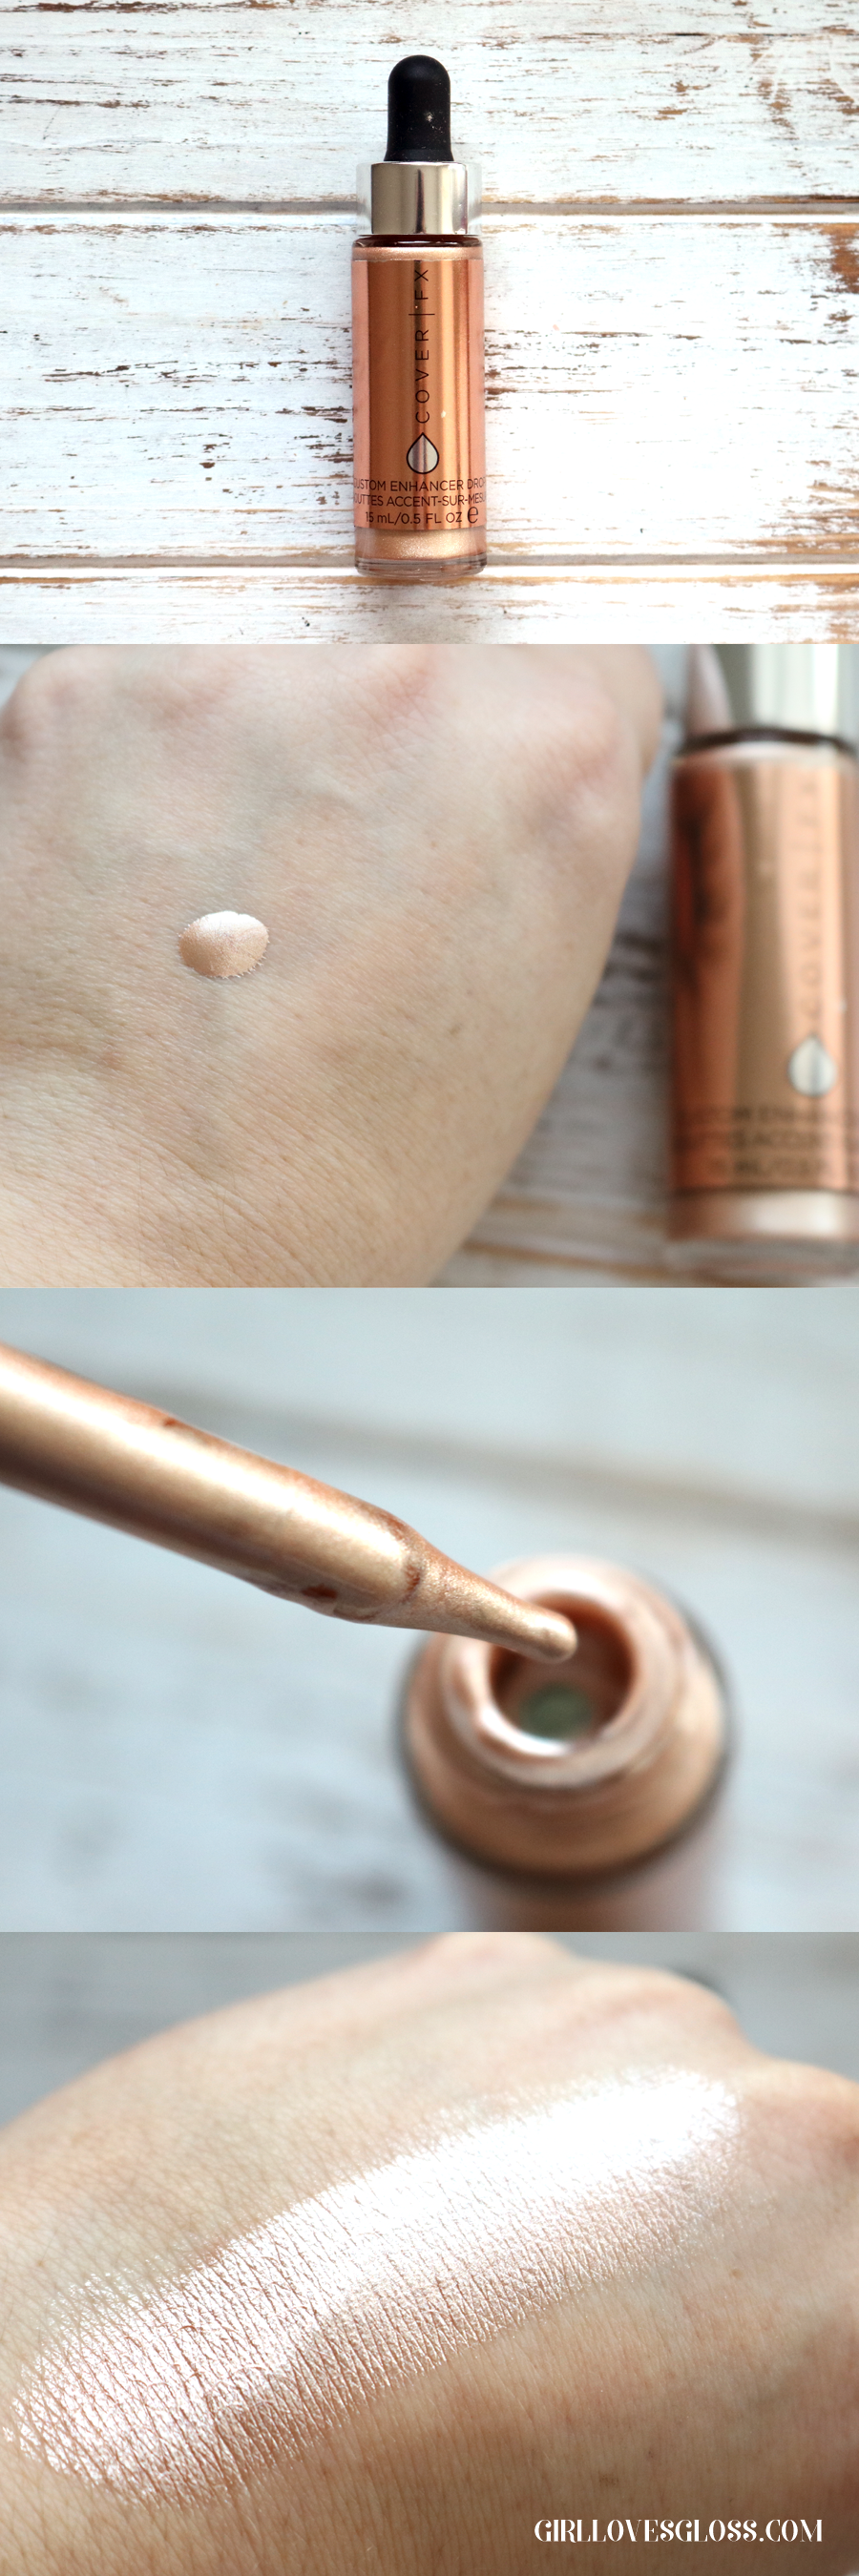 CoverFx Custom Enhancer Drops Review and Swatch